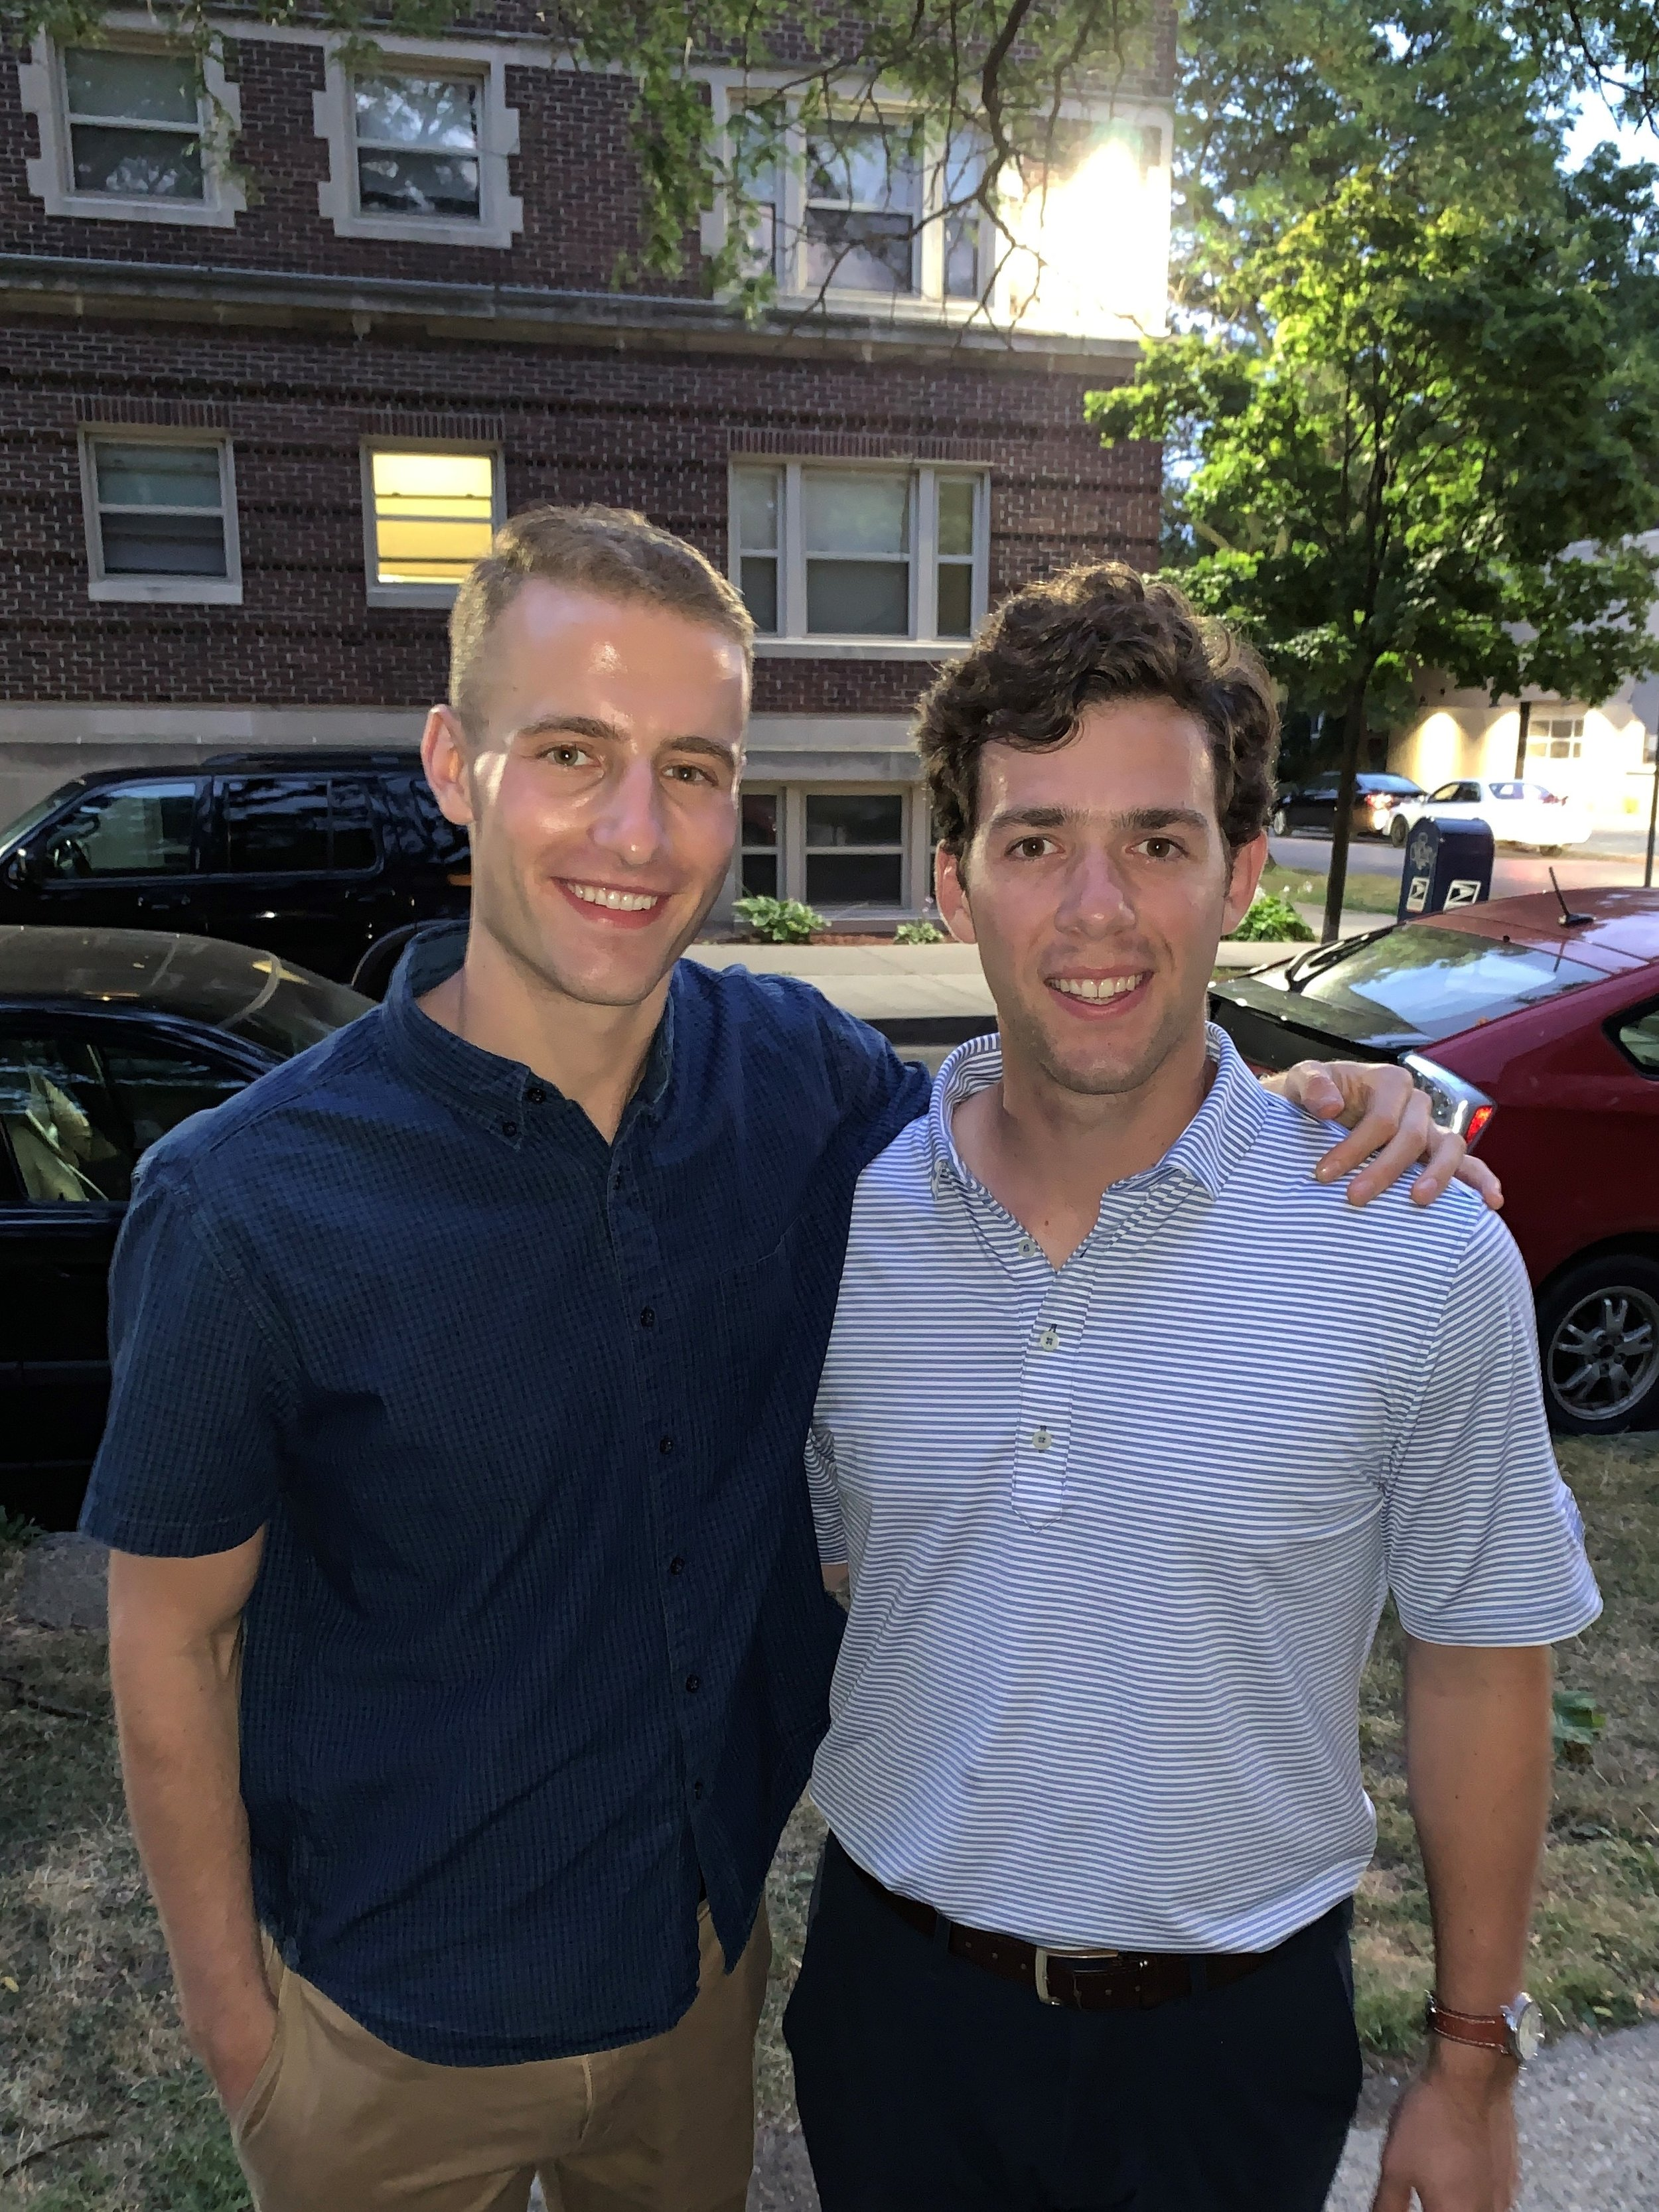 Charles Levin and Joey Abraham in the West Village neighborhood.